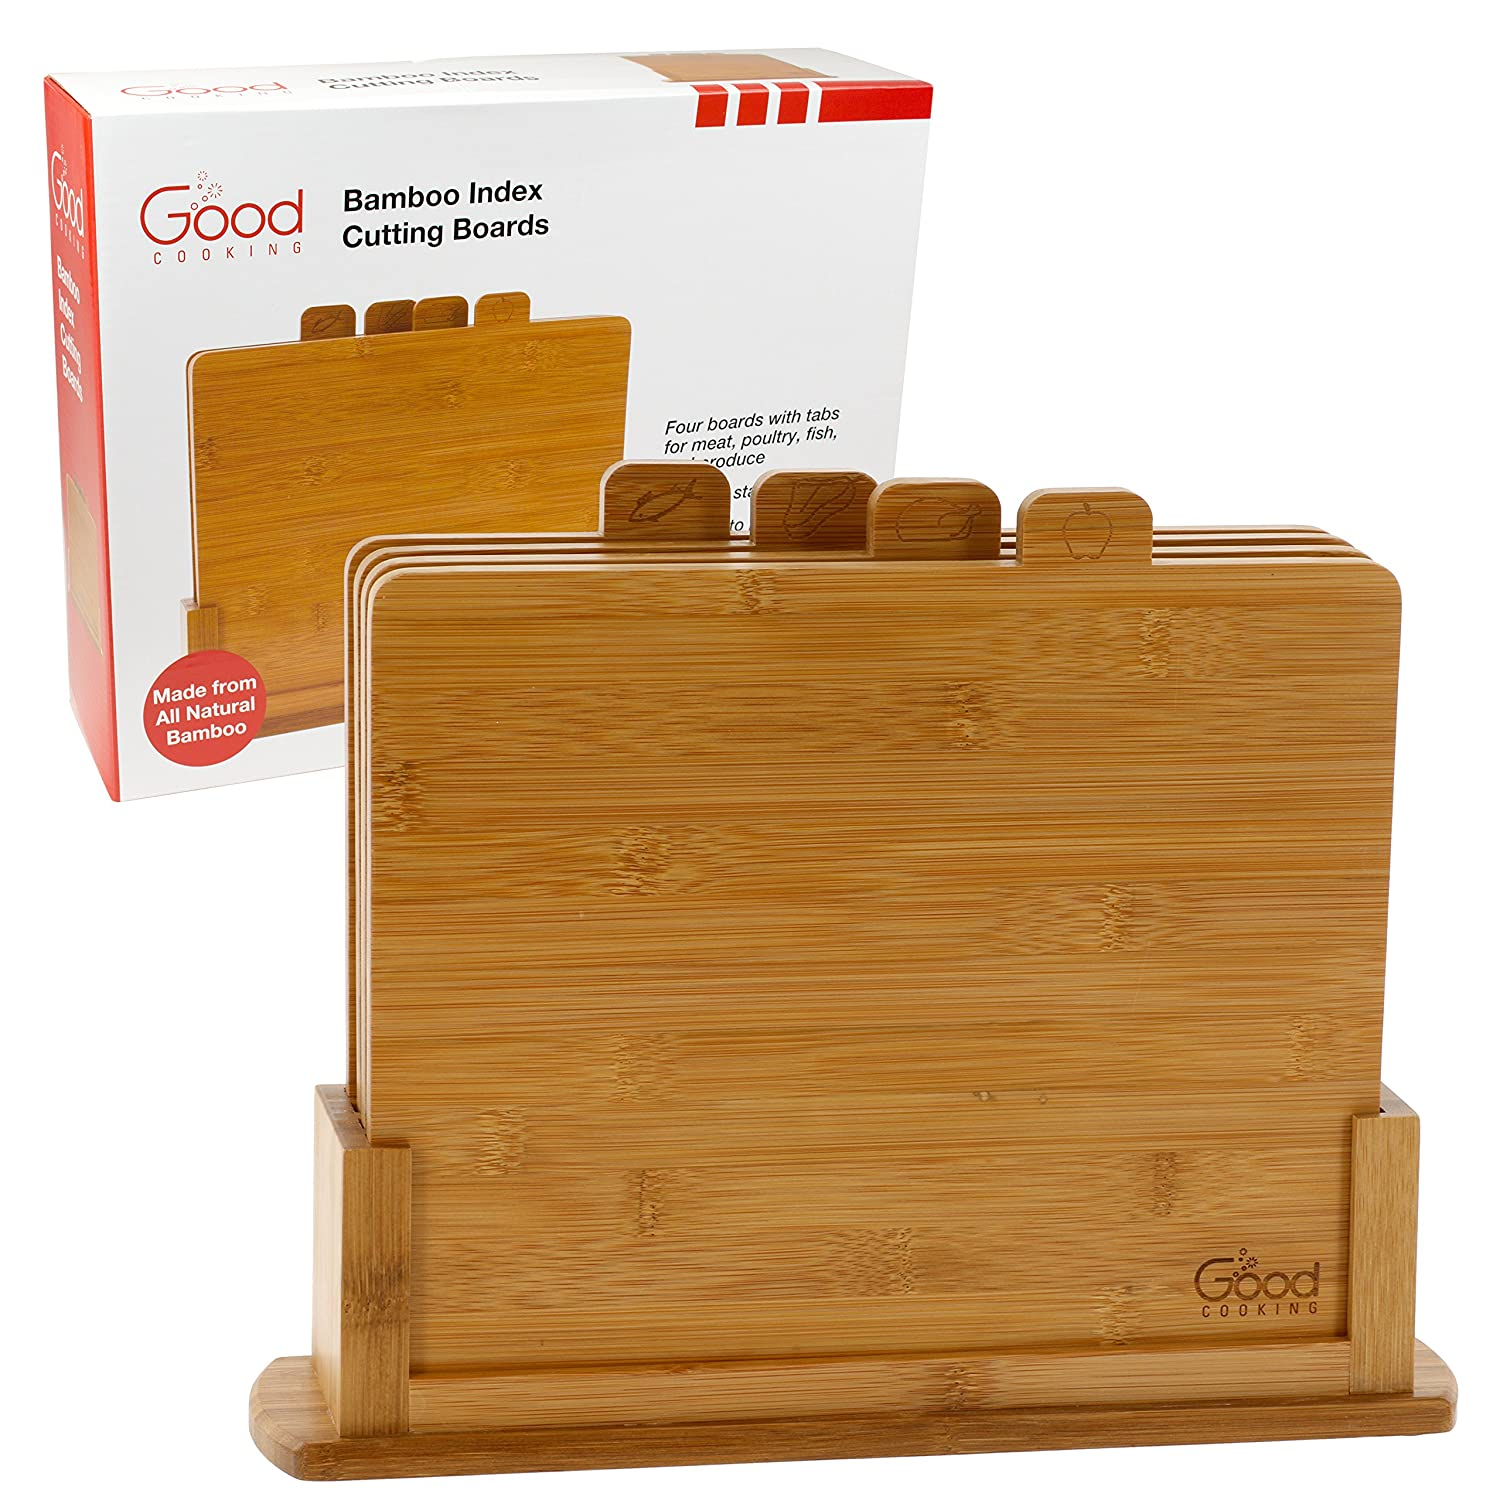 Bamboo Index Cutting Boards- All Natural Chopping Board with 4 Index Tabs by Good Cooking GCO-BCB-300